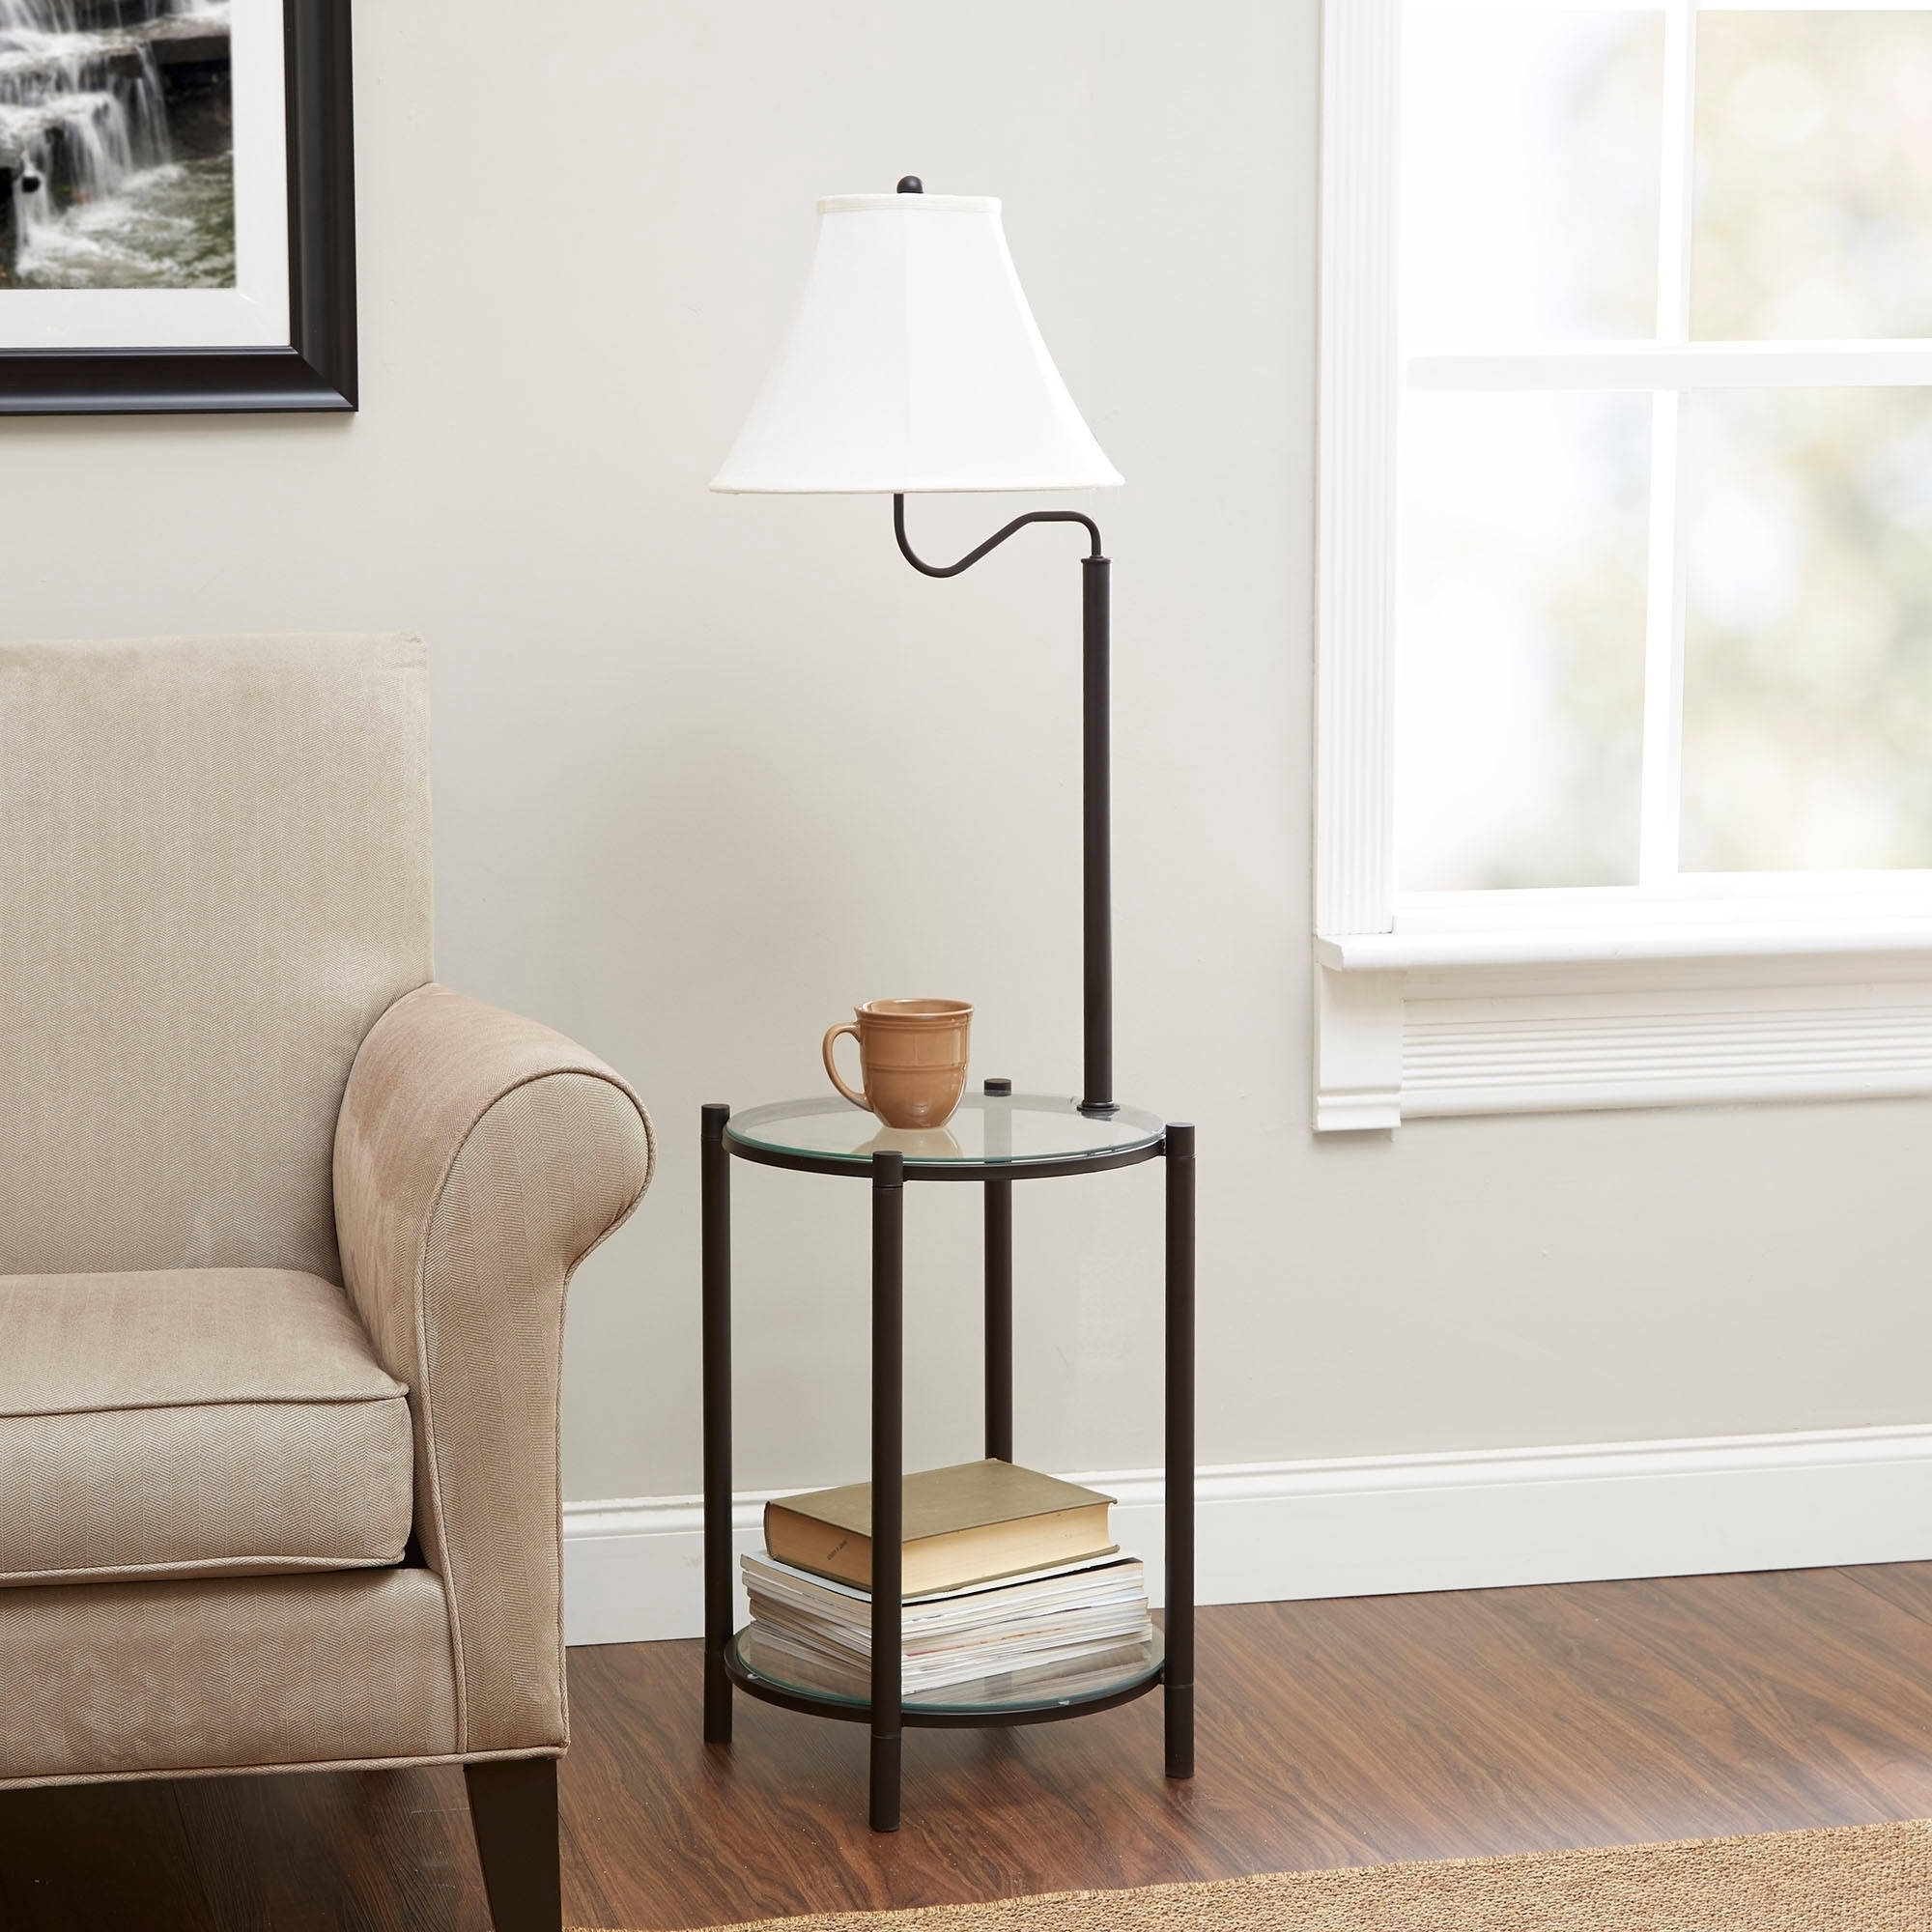 Top 65 Terrific Led Light Bulbs Walmart Bedside Table Lamps For Intended For Preferred Walmart Living Room Table Lamps (View 15 of 20)